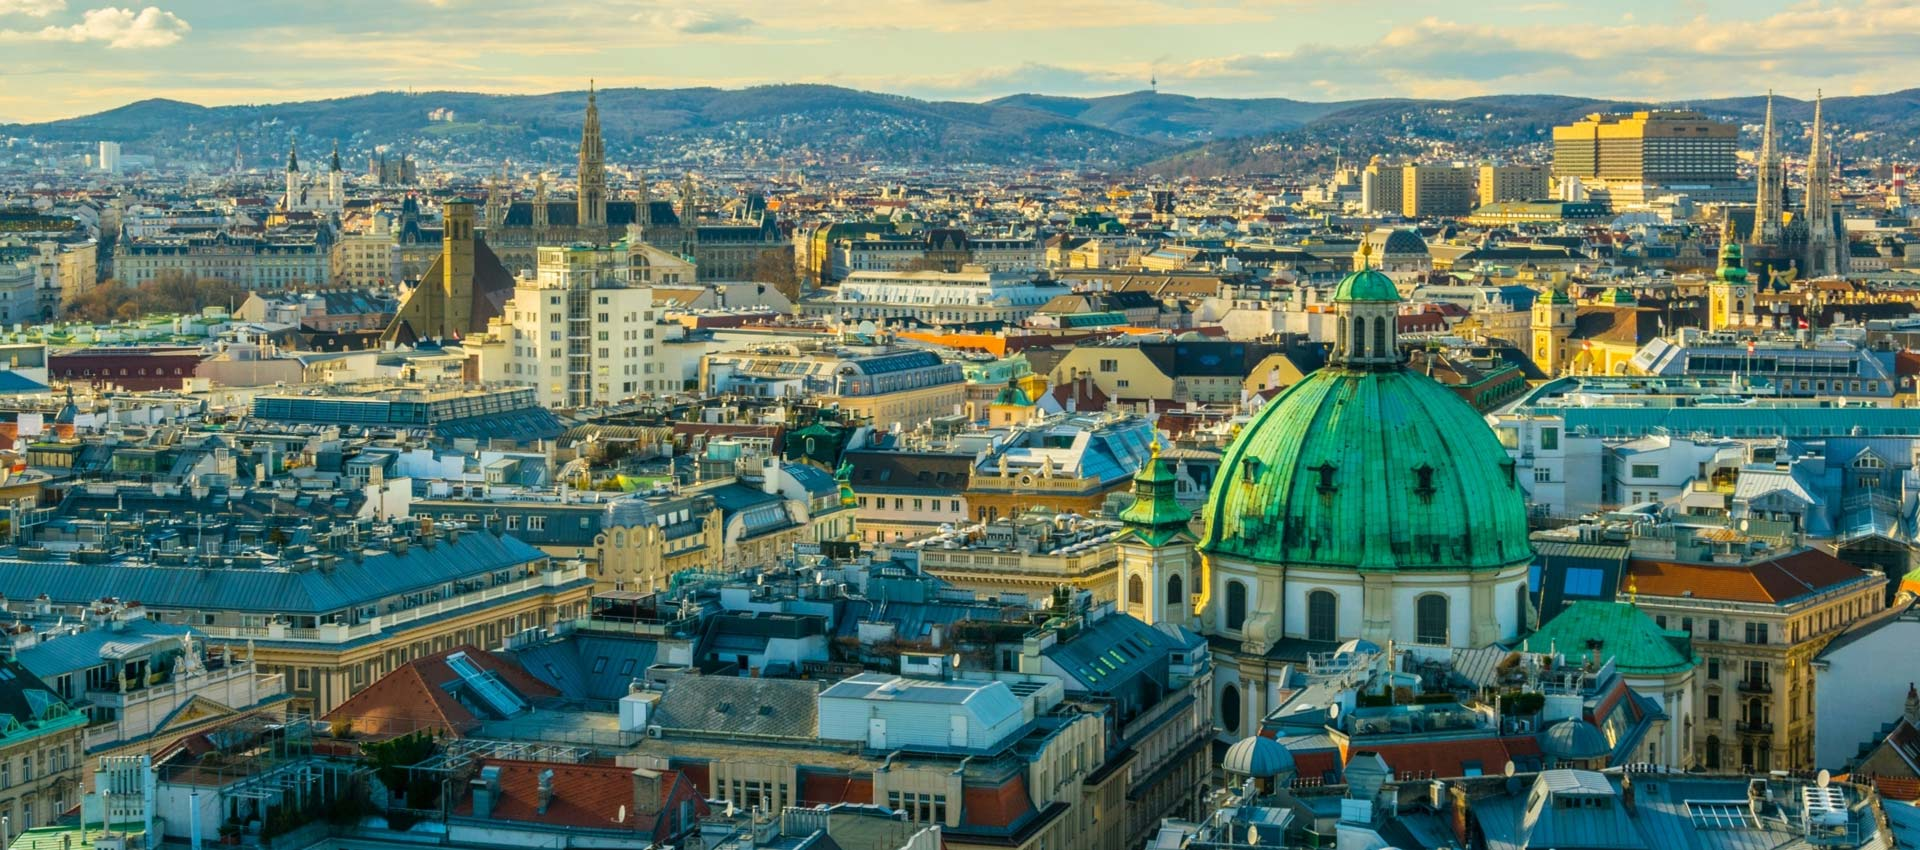 Find a gay place in Austria change country